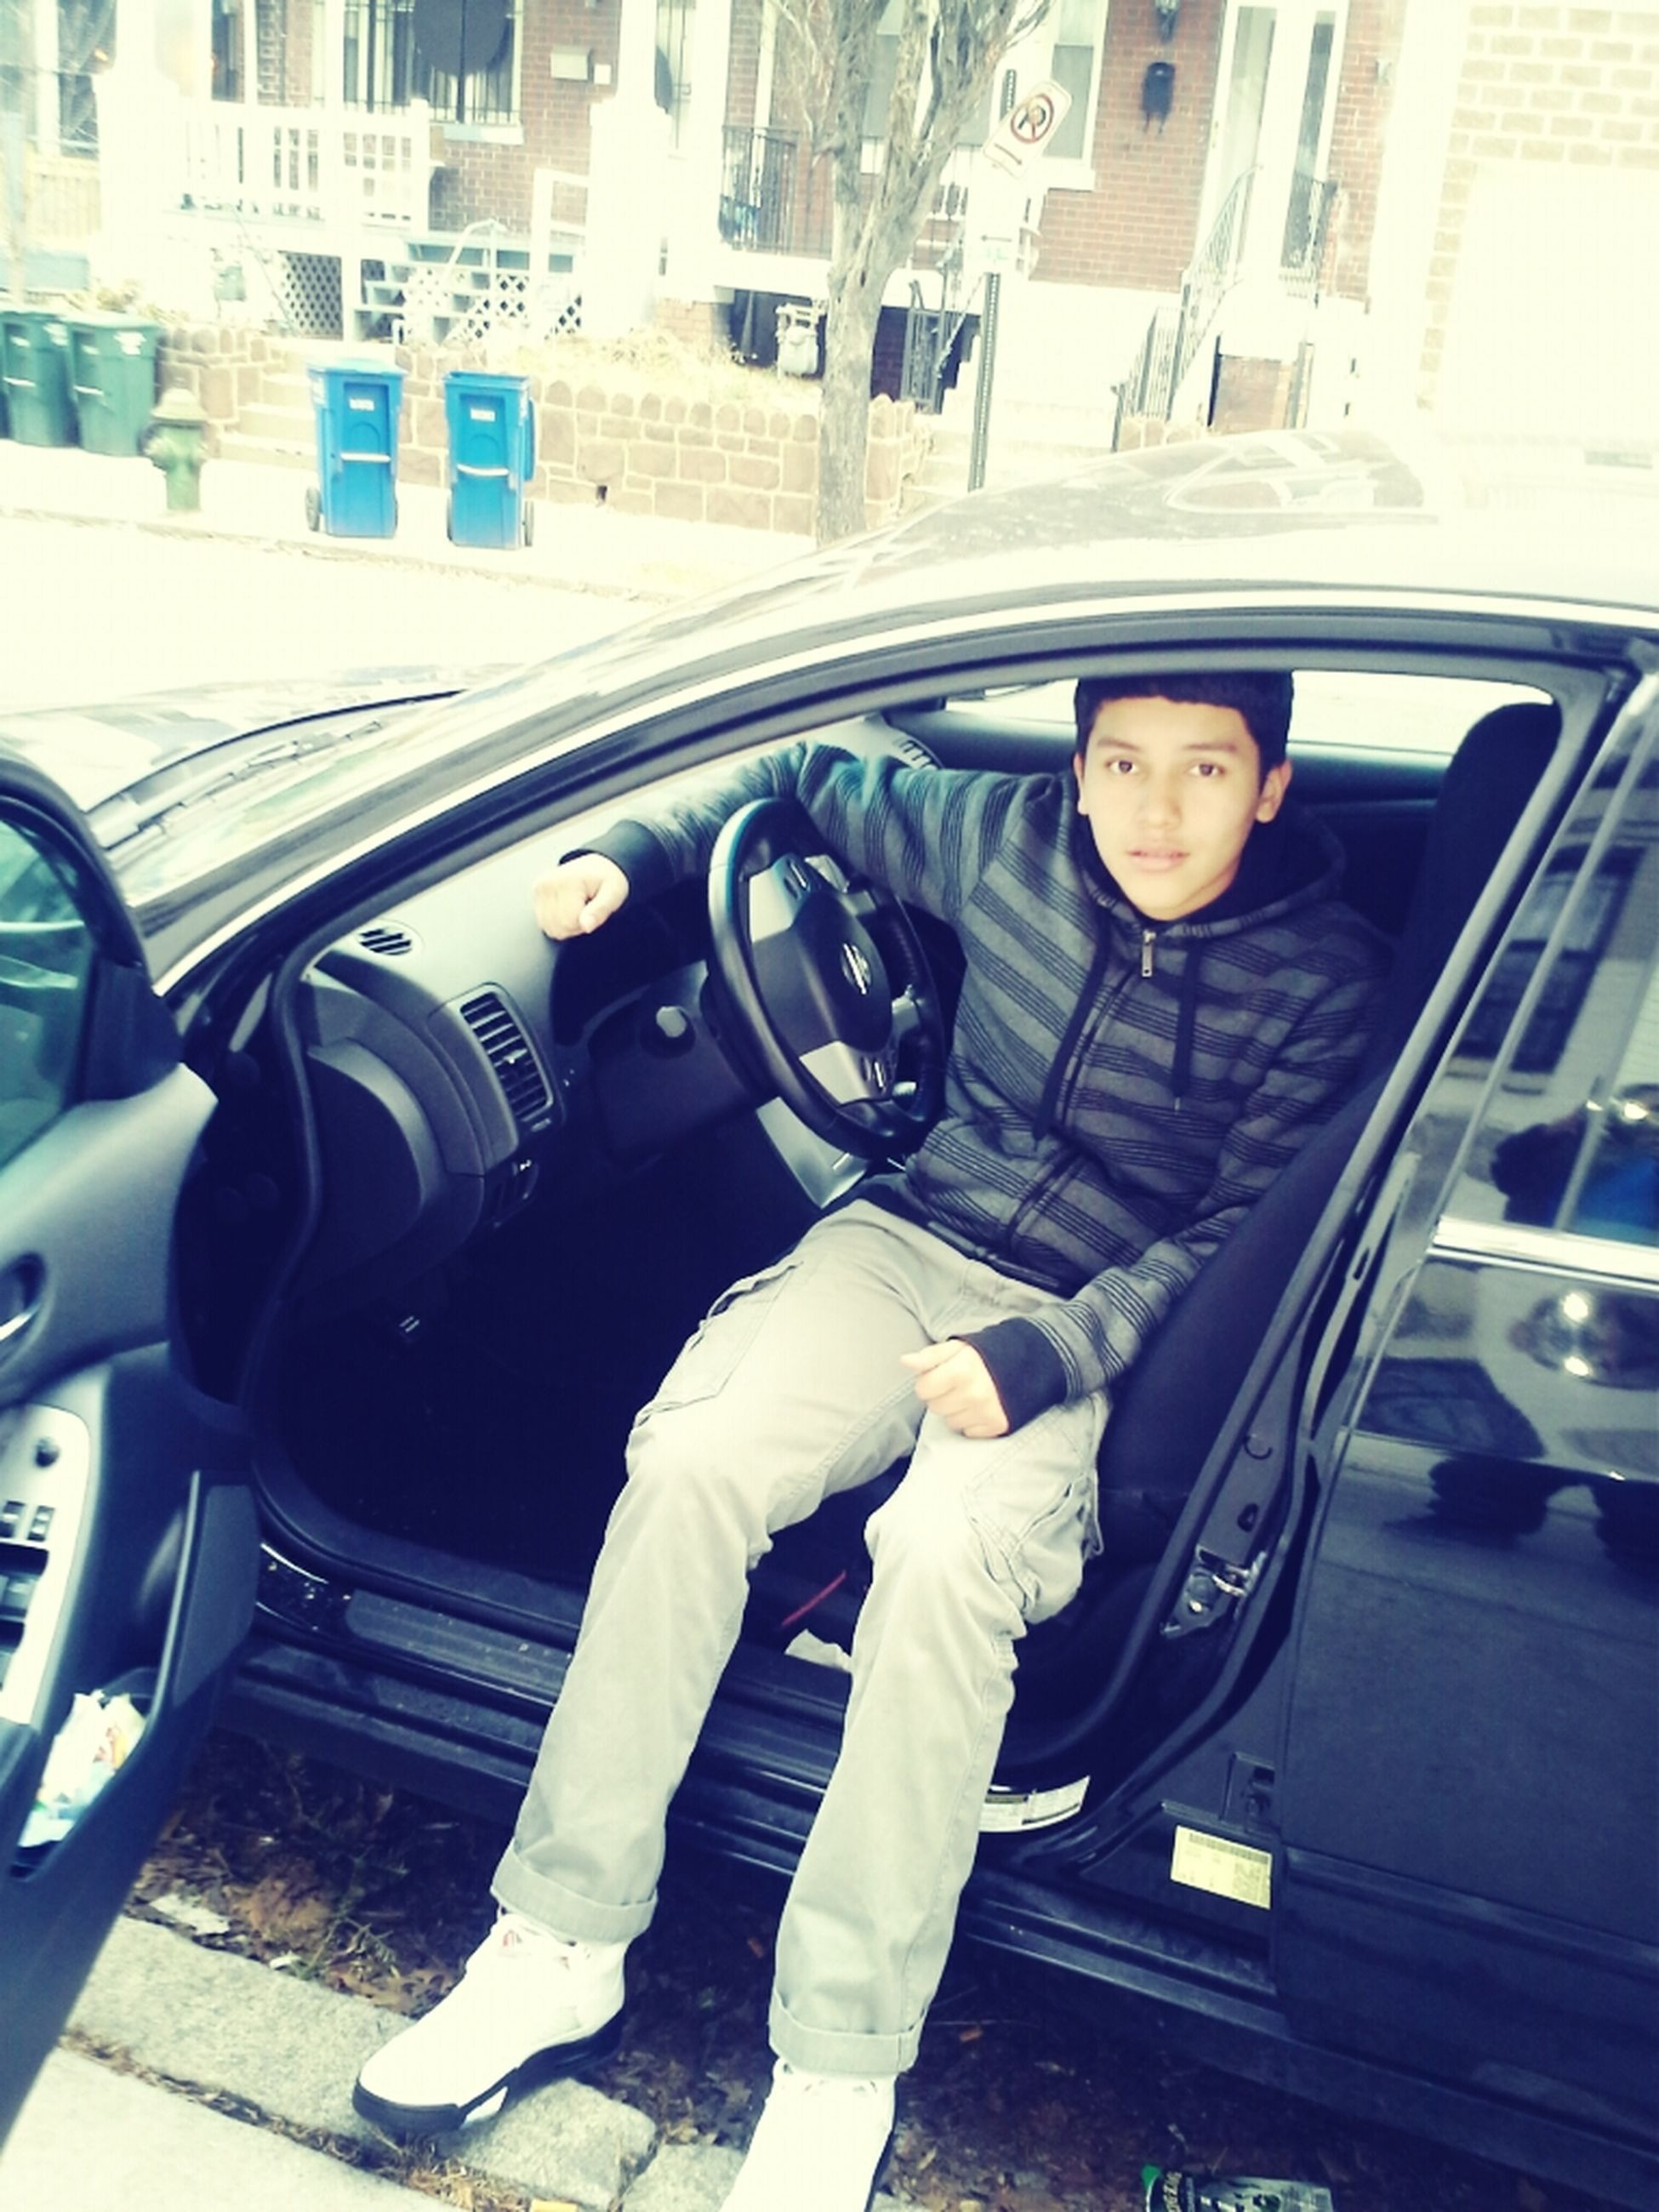 transportation, mode of transport, land vehicle, lifestyles, car, built structure, architecture, young adult, building exterior, leisure activity, casual clothing, person, street, day, front view, city, travel, standing